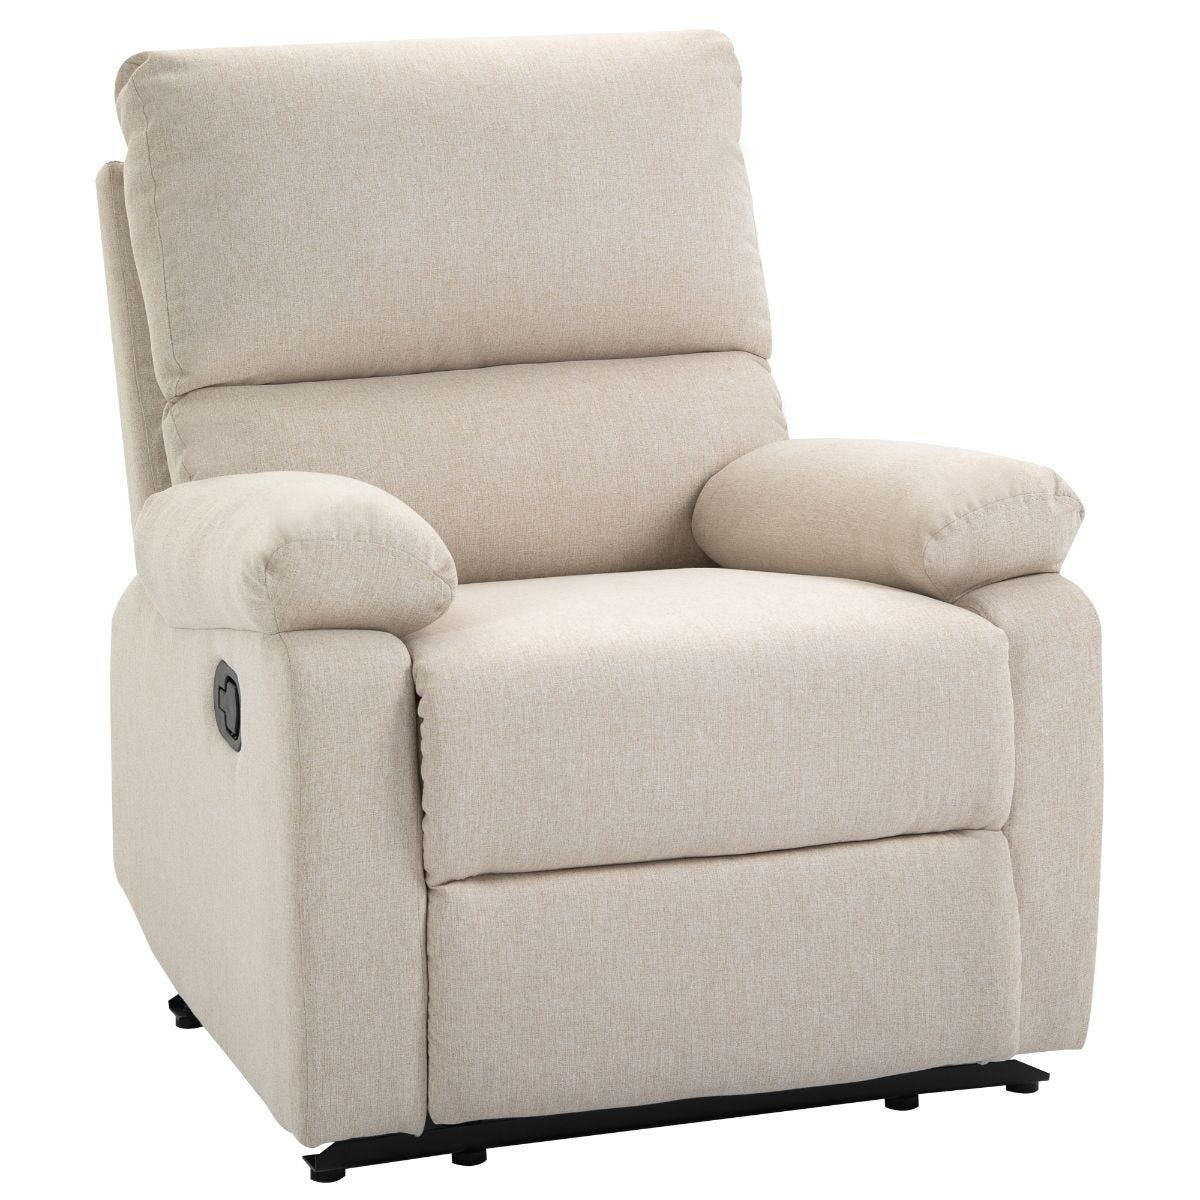 Padded Manual Recliner Armchair With Footrest Metal Frame Beige